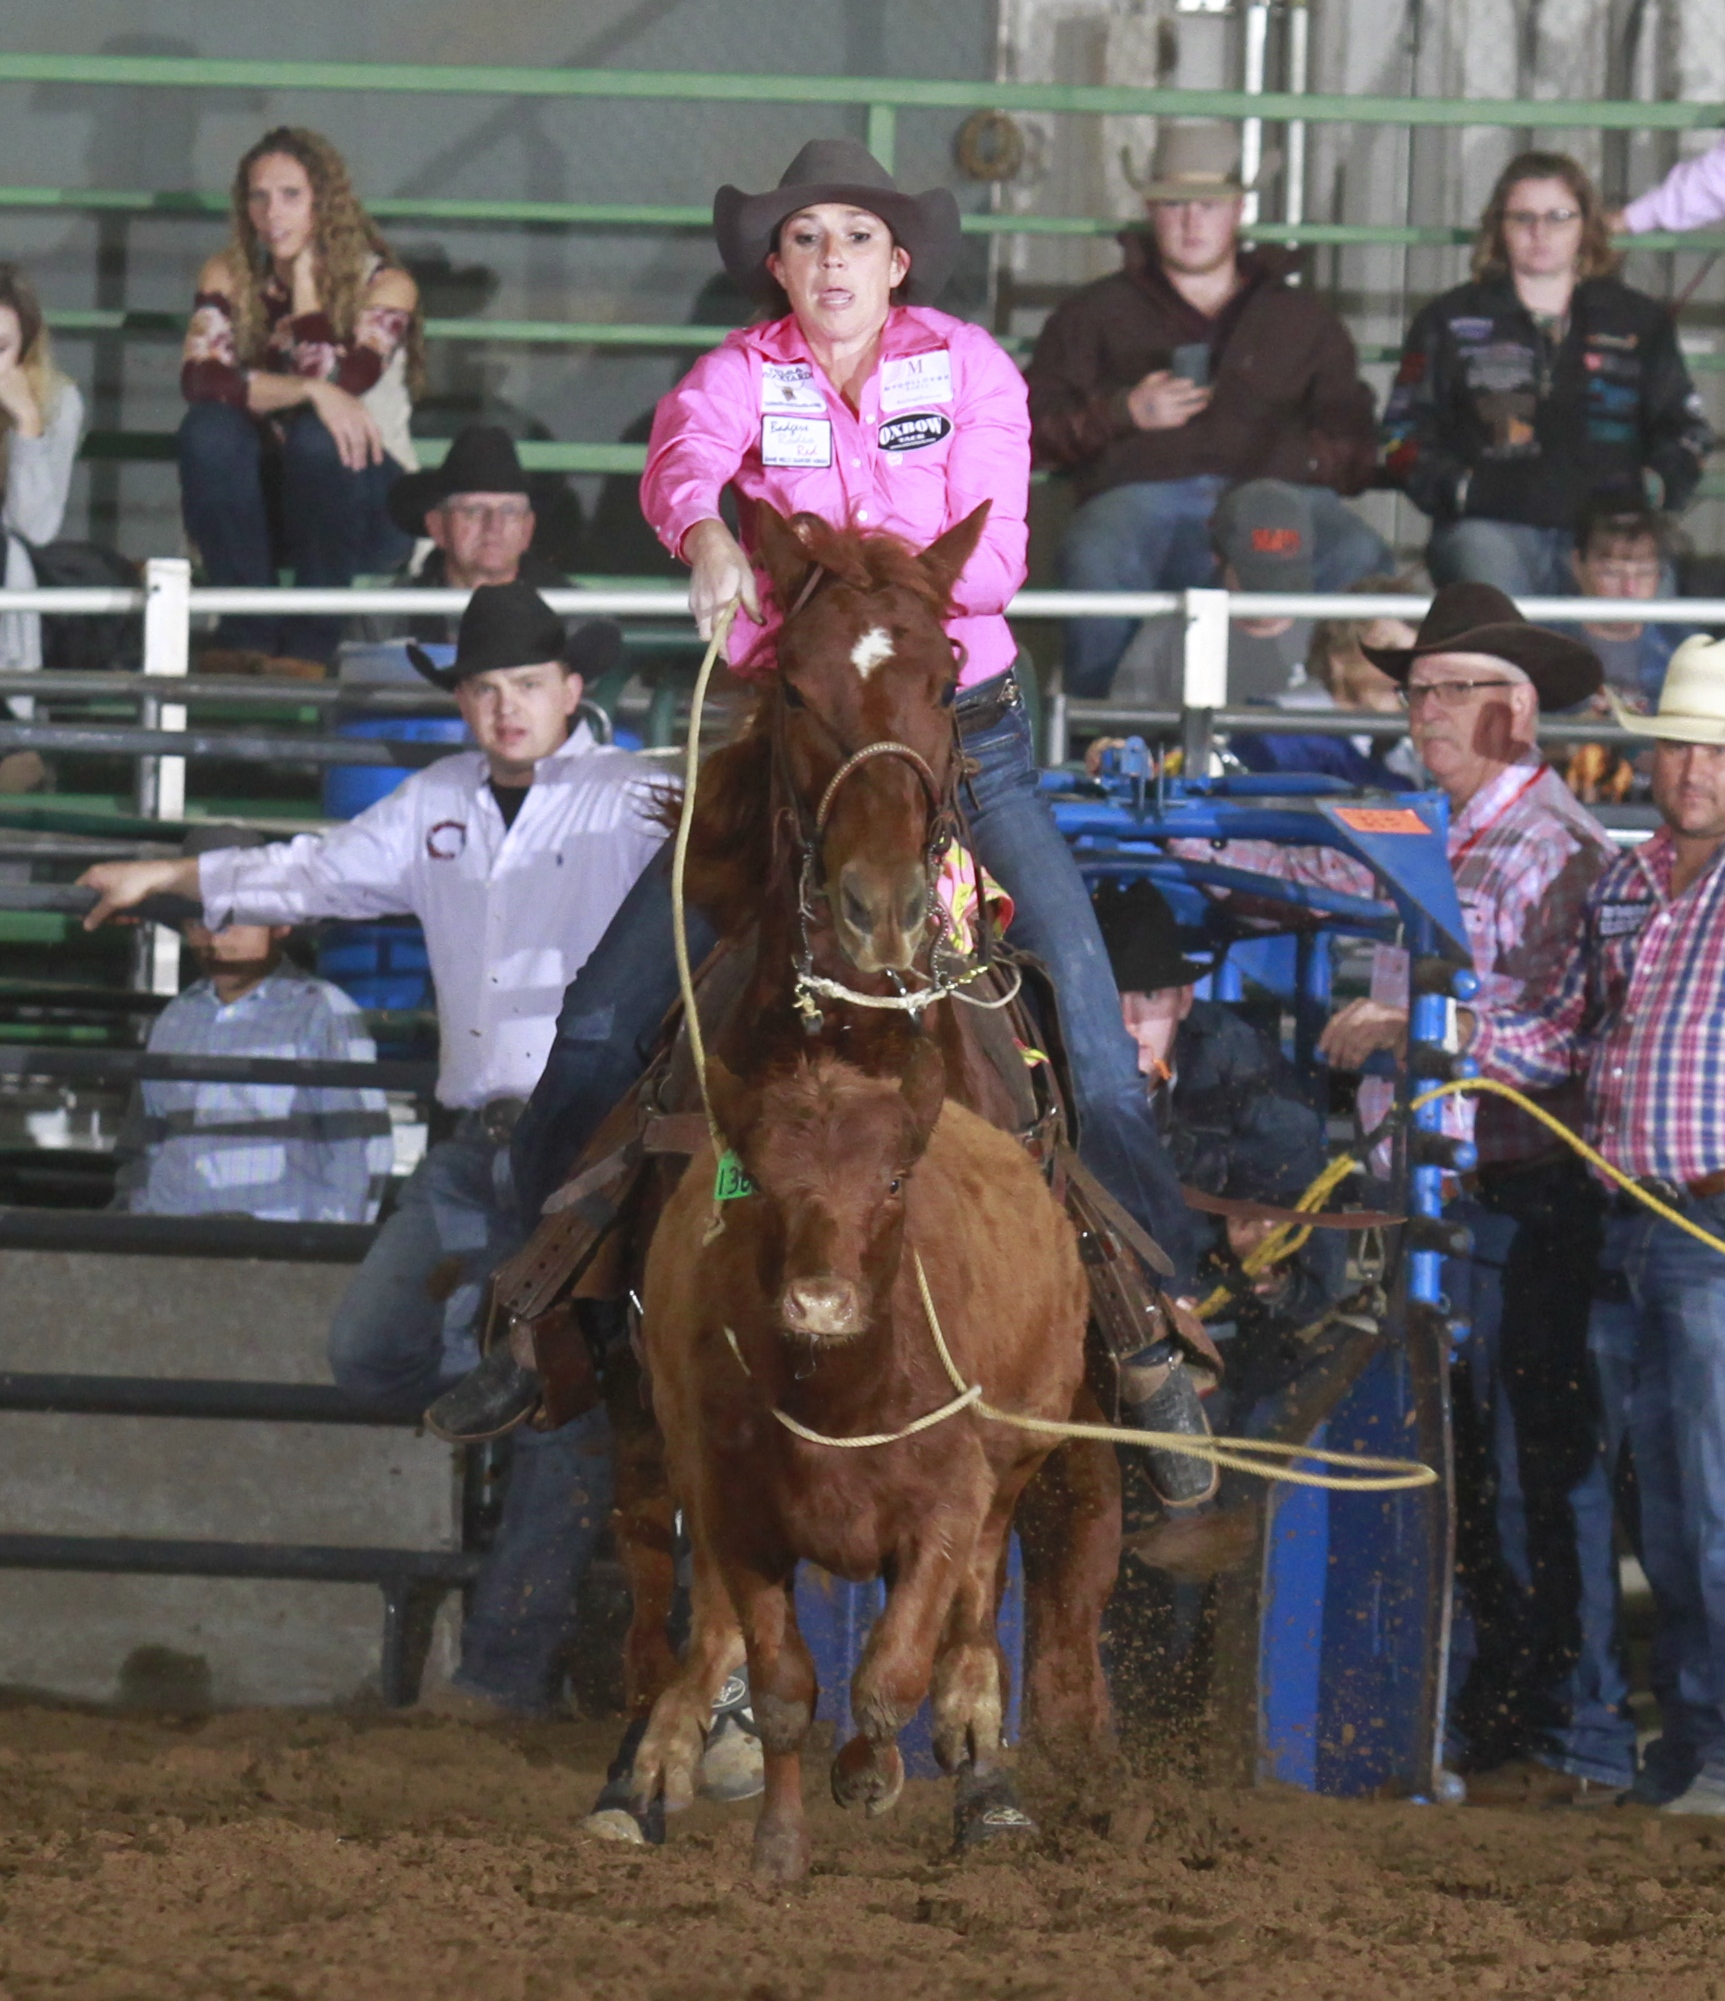 2017 Champion Breakaway Roper - Angela Chaffin